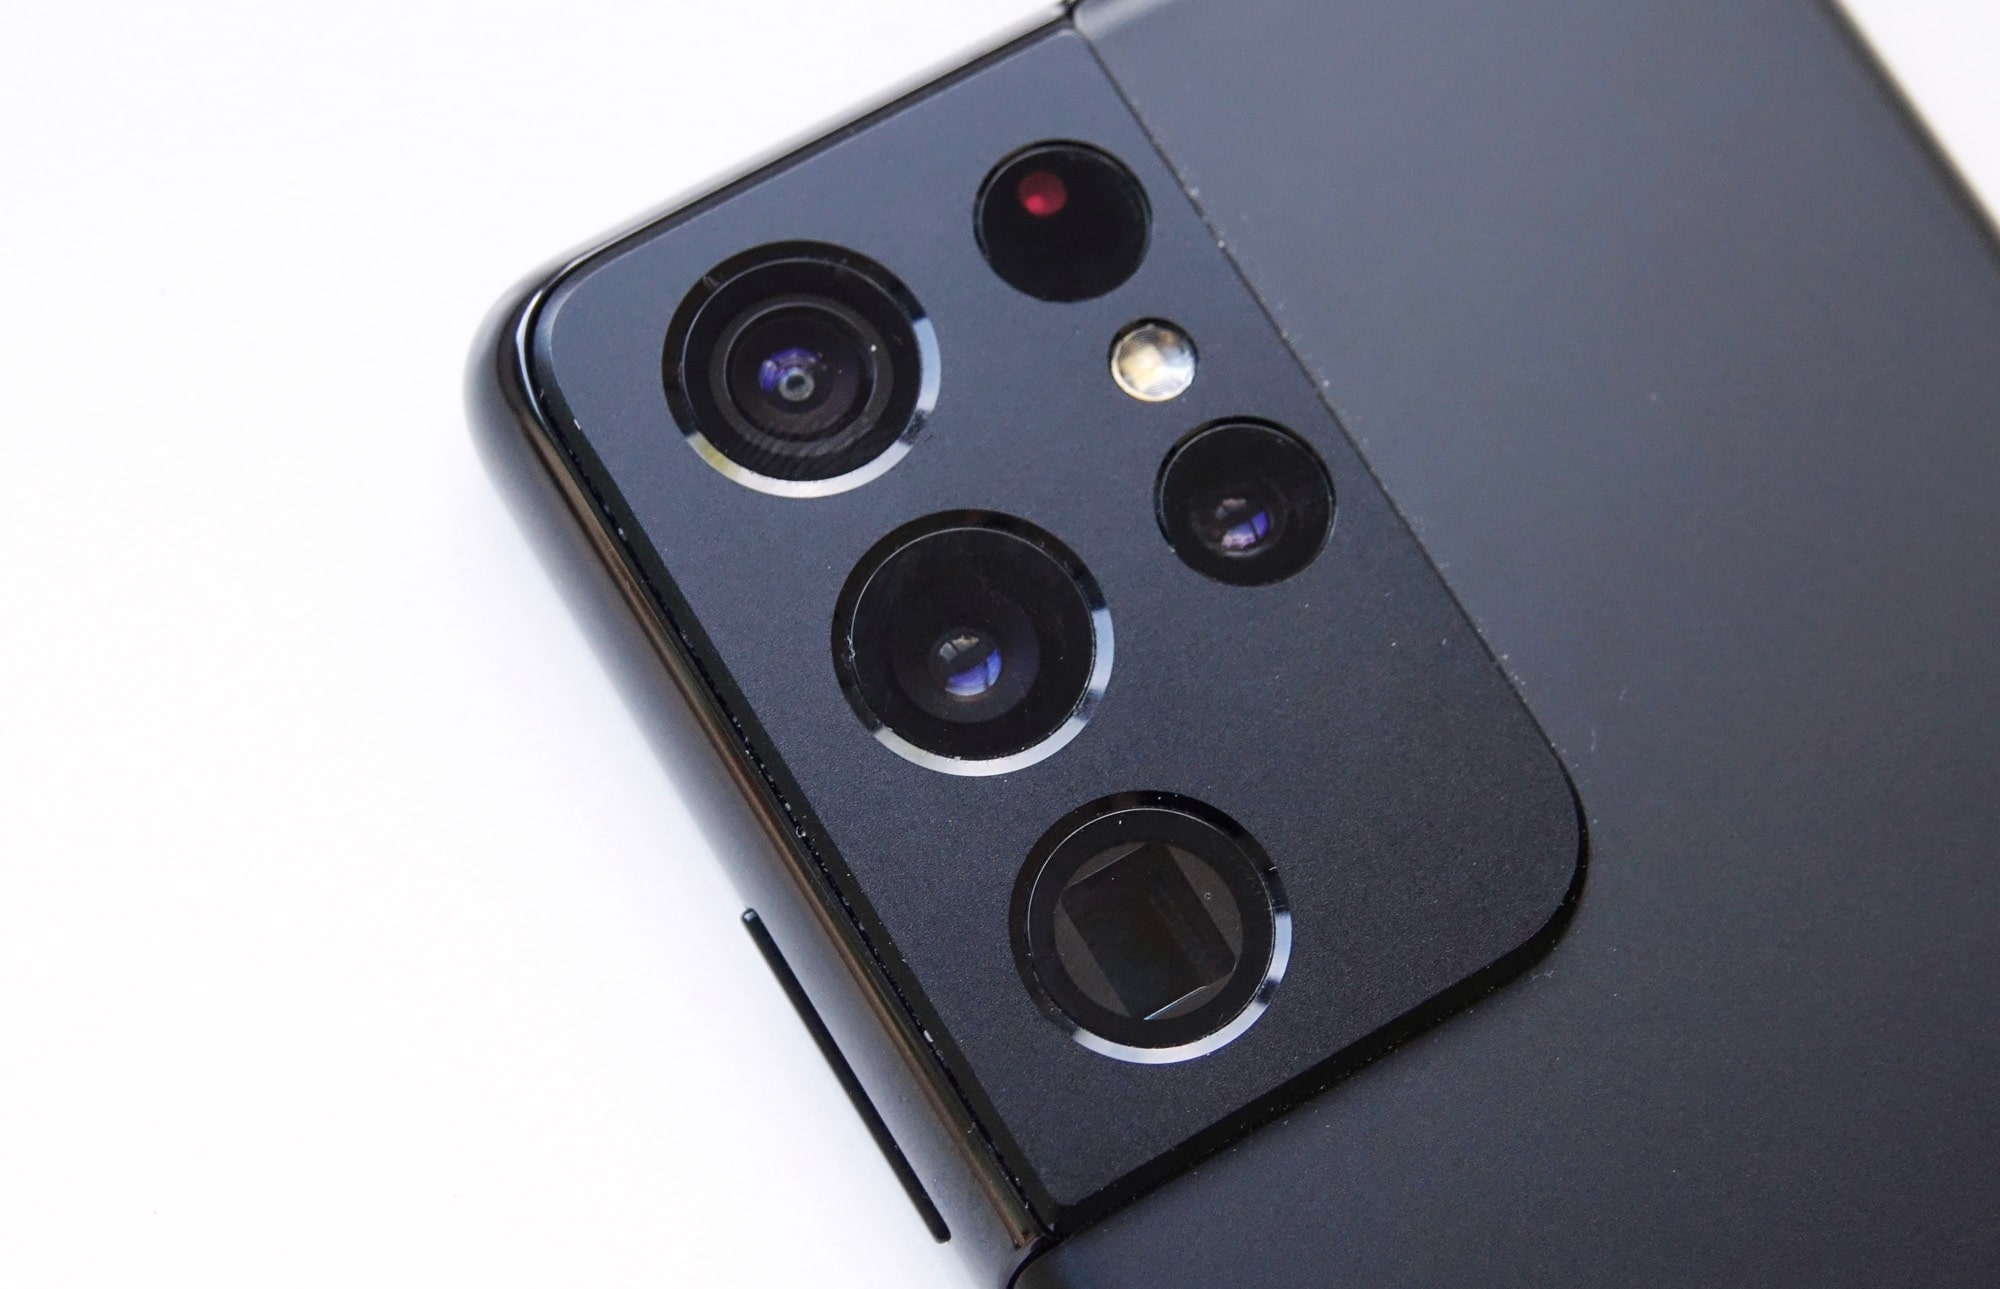 The Galaxy S21 Ultra's camera system